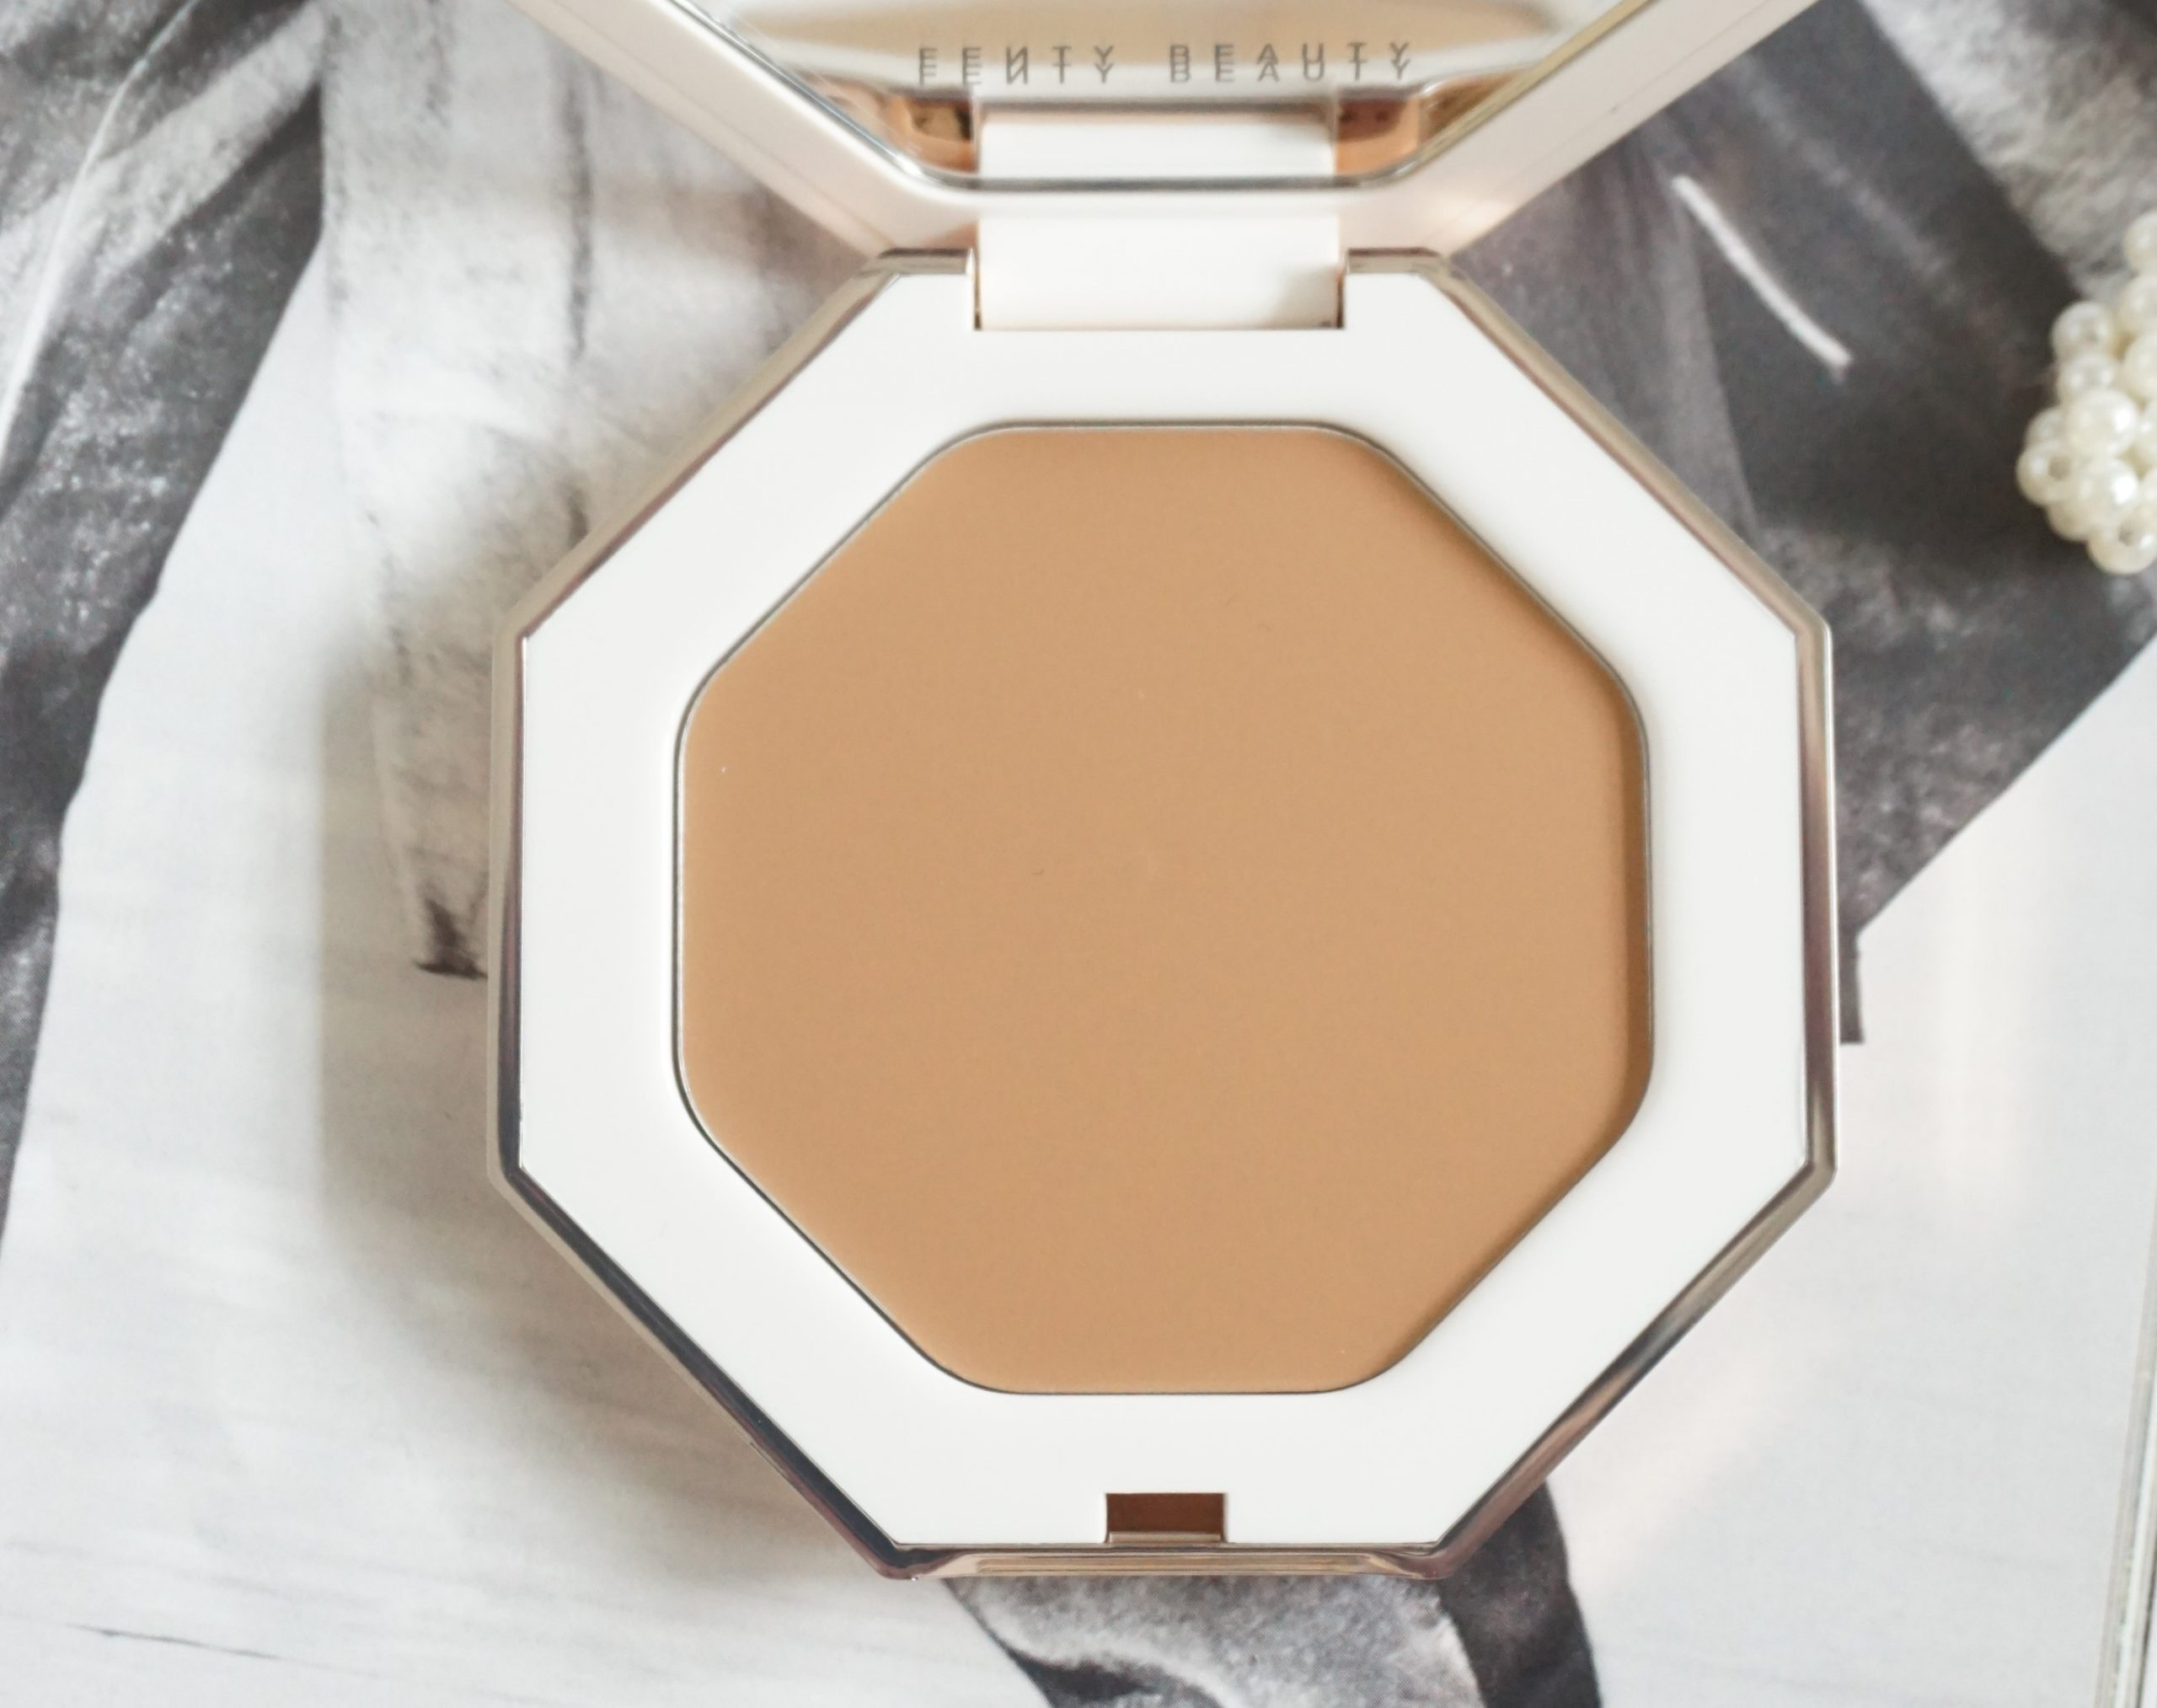 MY 5 BEAUTY FAVORITES OF THE MONTH JUNE 2020